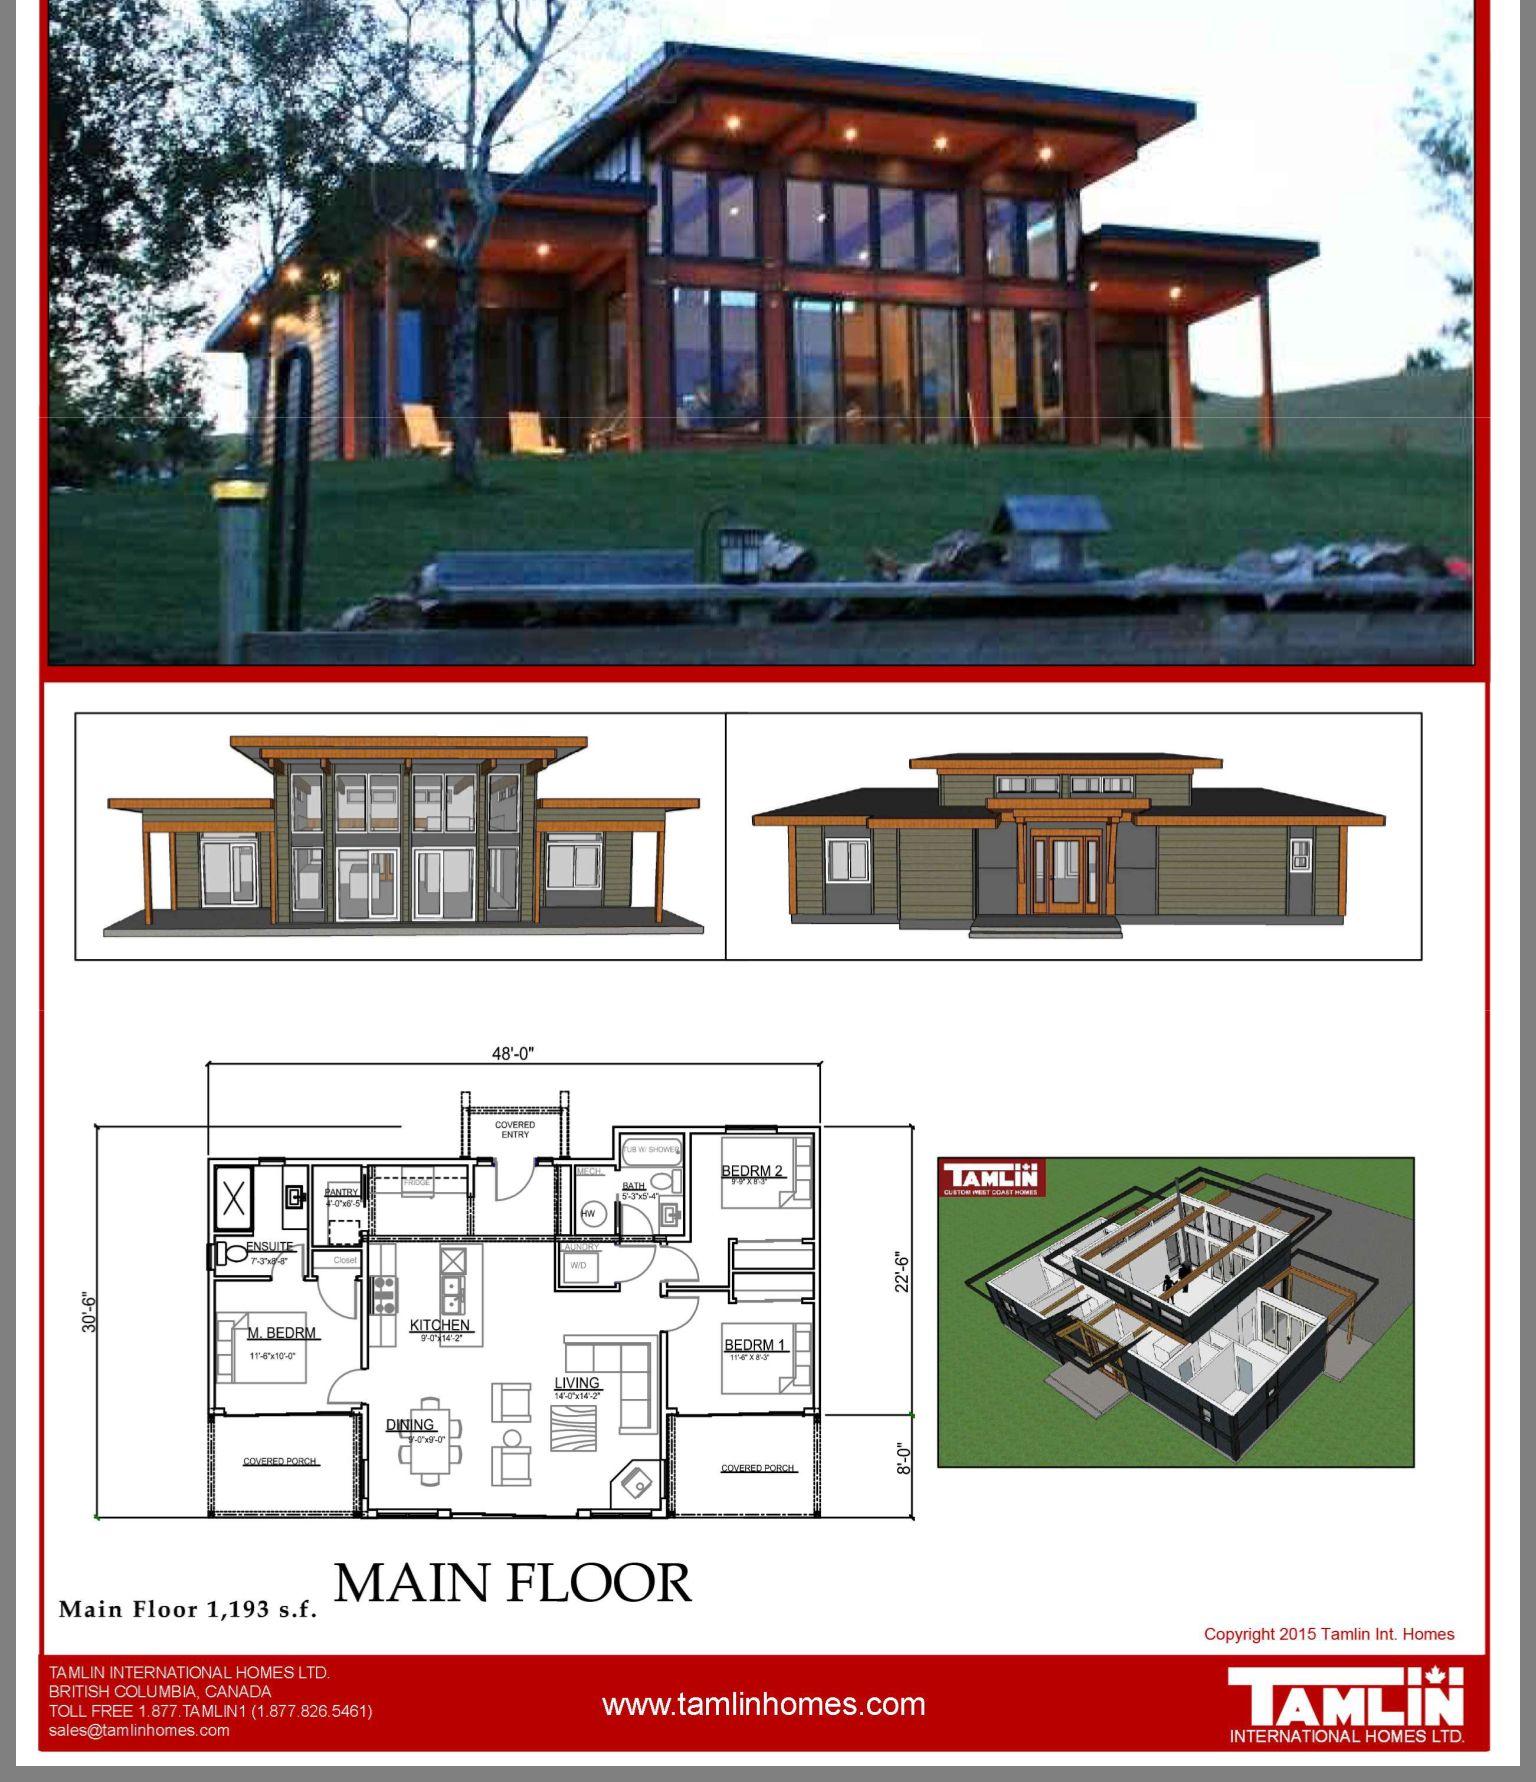 Pin By Courtney Aber On Exterior Lake House Plans My House Plans Mountain House Plans